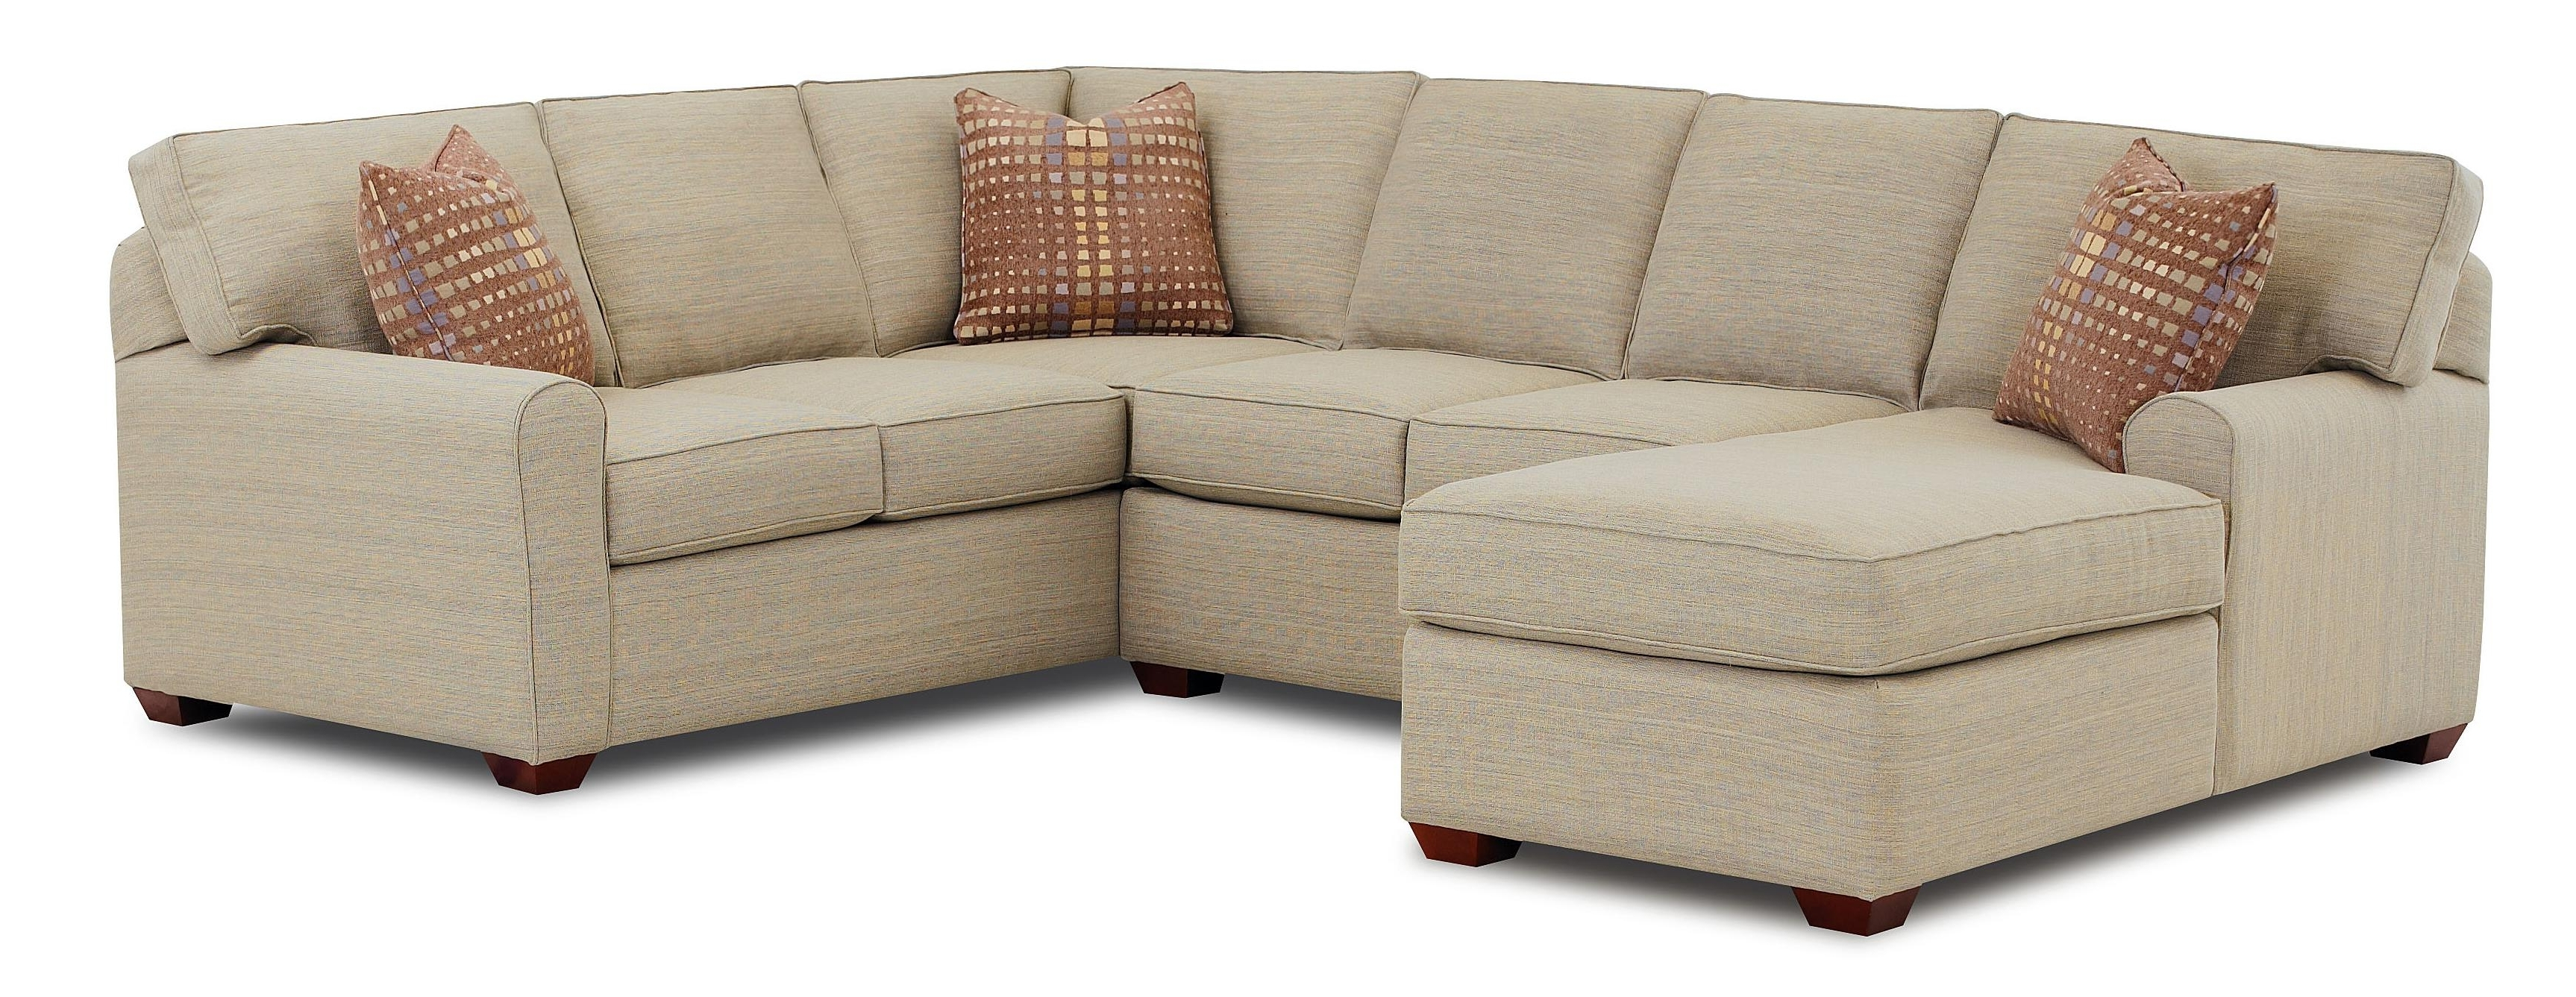 2018 Sofa Chaise Lounges In Sectional Sofa With Left Facing Chaise Loungeklaussner (View 3 of 15)